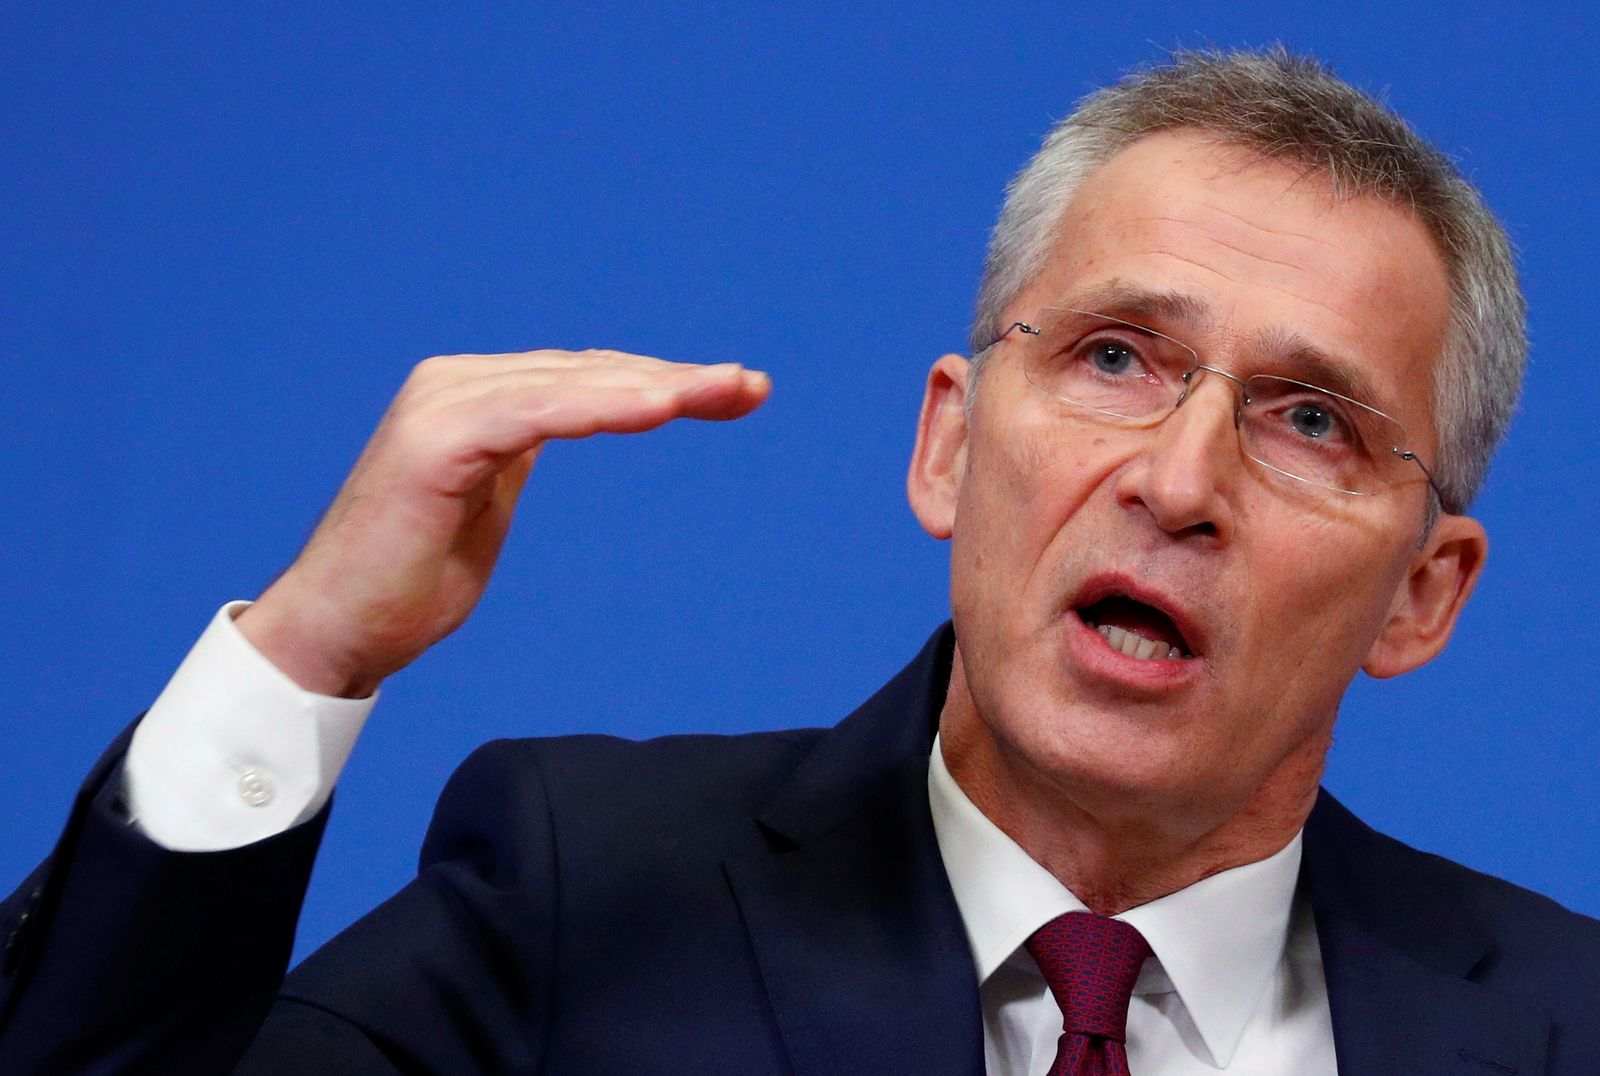 NATO Secretary General Jens Stoltenberg holds a news conference at the Alliance headquarters in Brussels